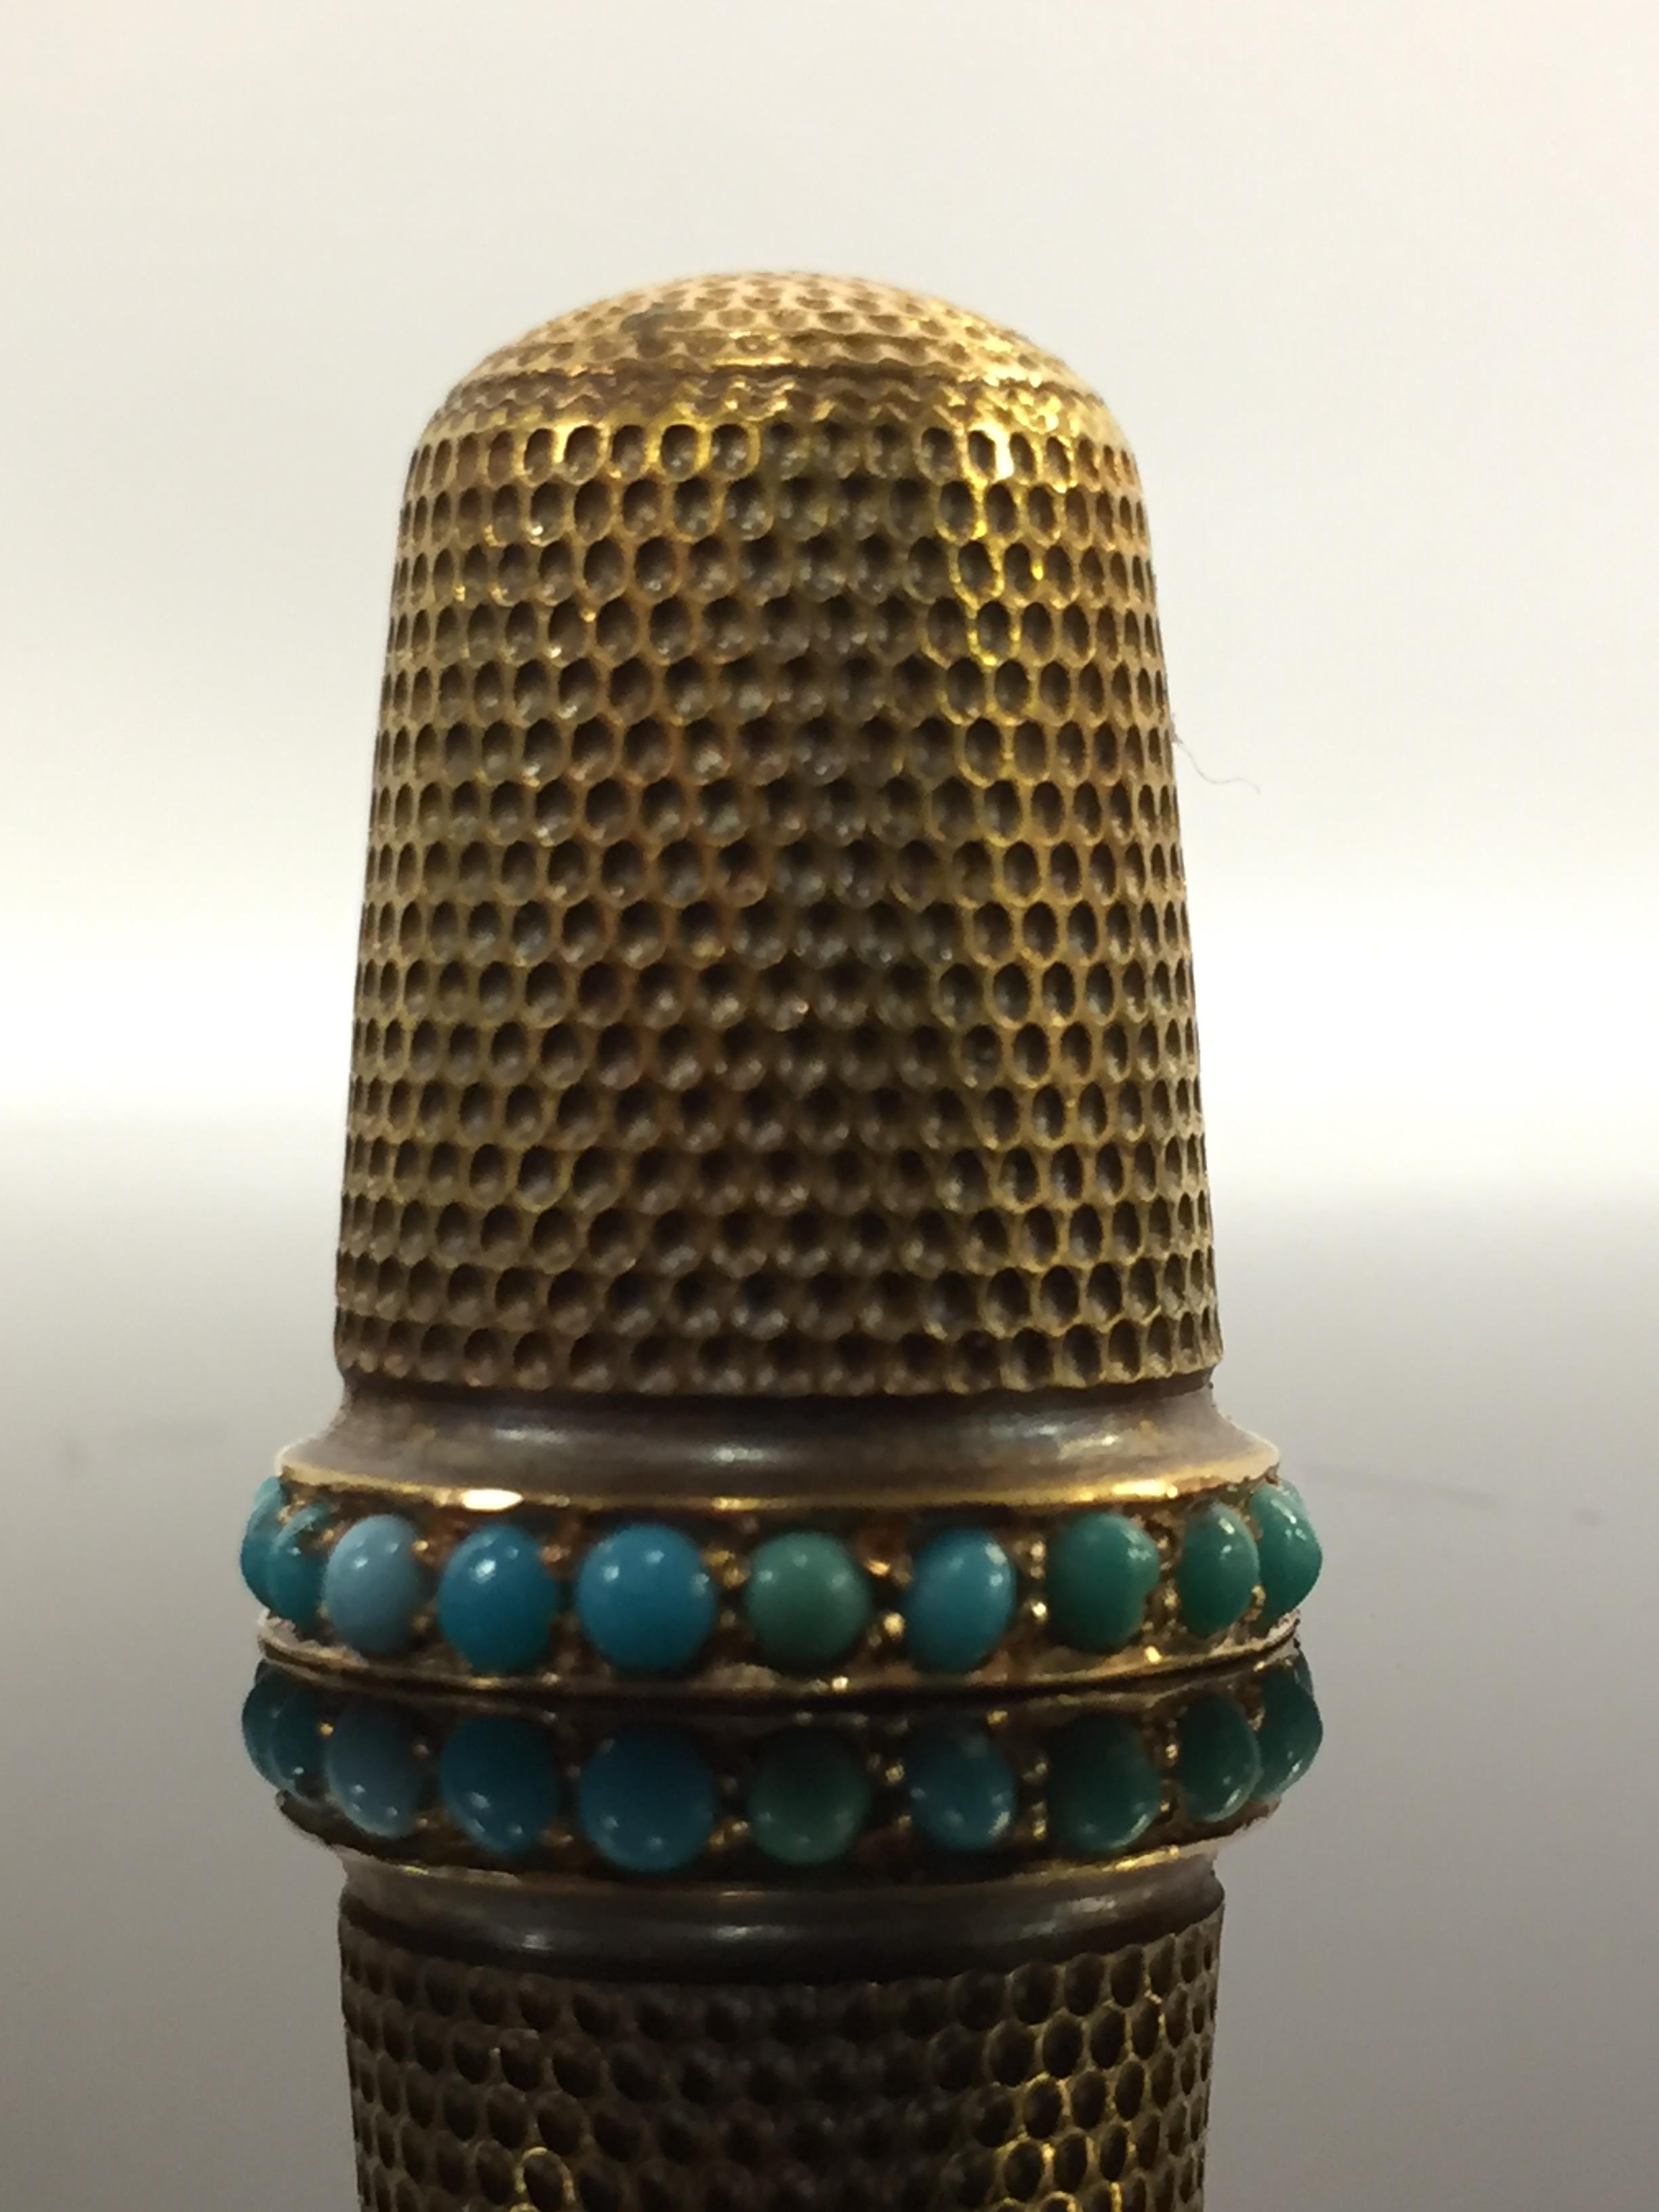 Lot 120 - A 15CT ROSE GOLD THIMBLE SET WITH A TURQUOISE RIM. PRESENTED IN AN ASPREY BOX.